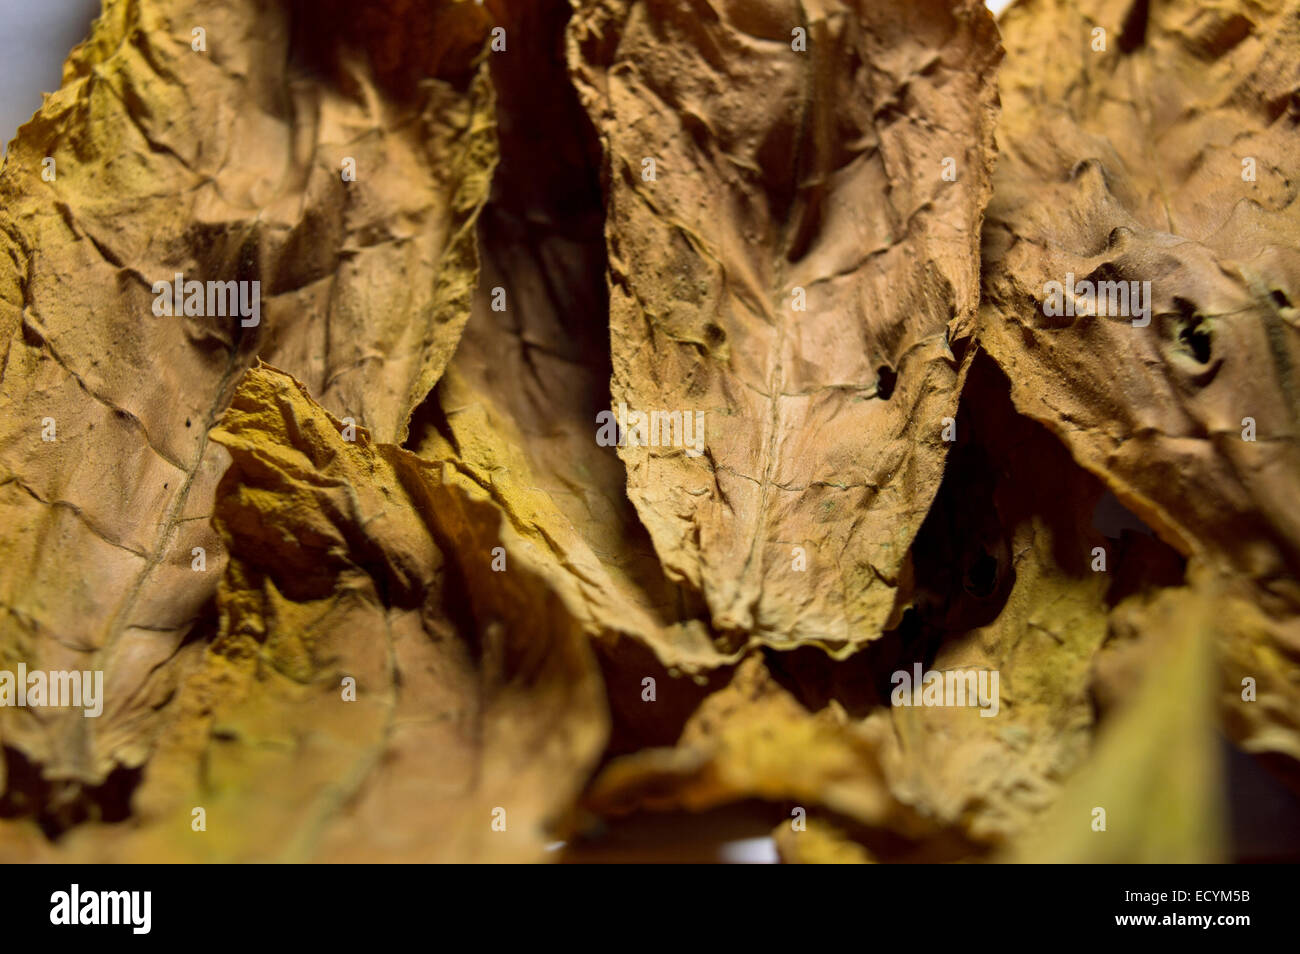 Oriental tobacco leaves - Stock Image